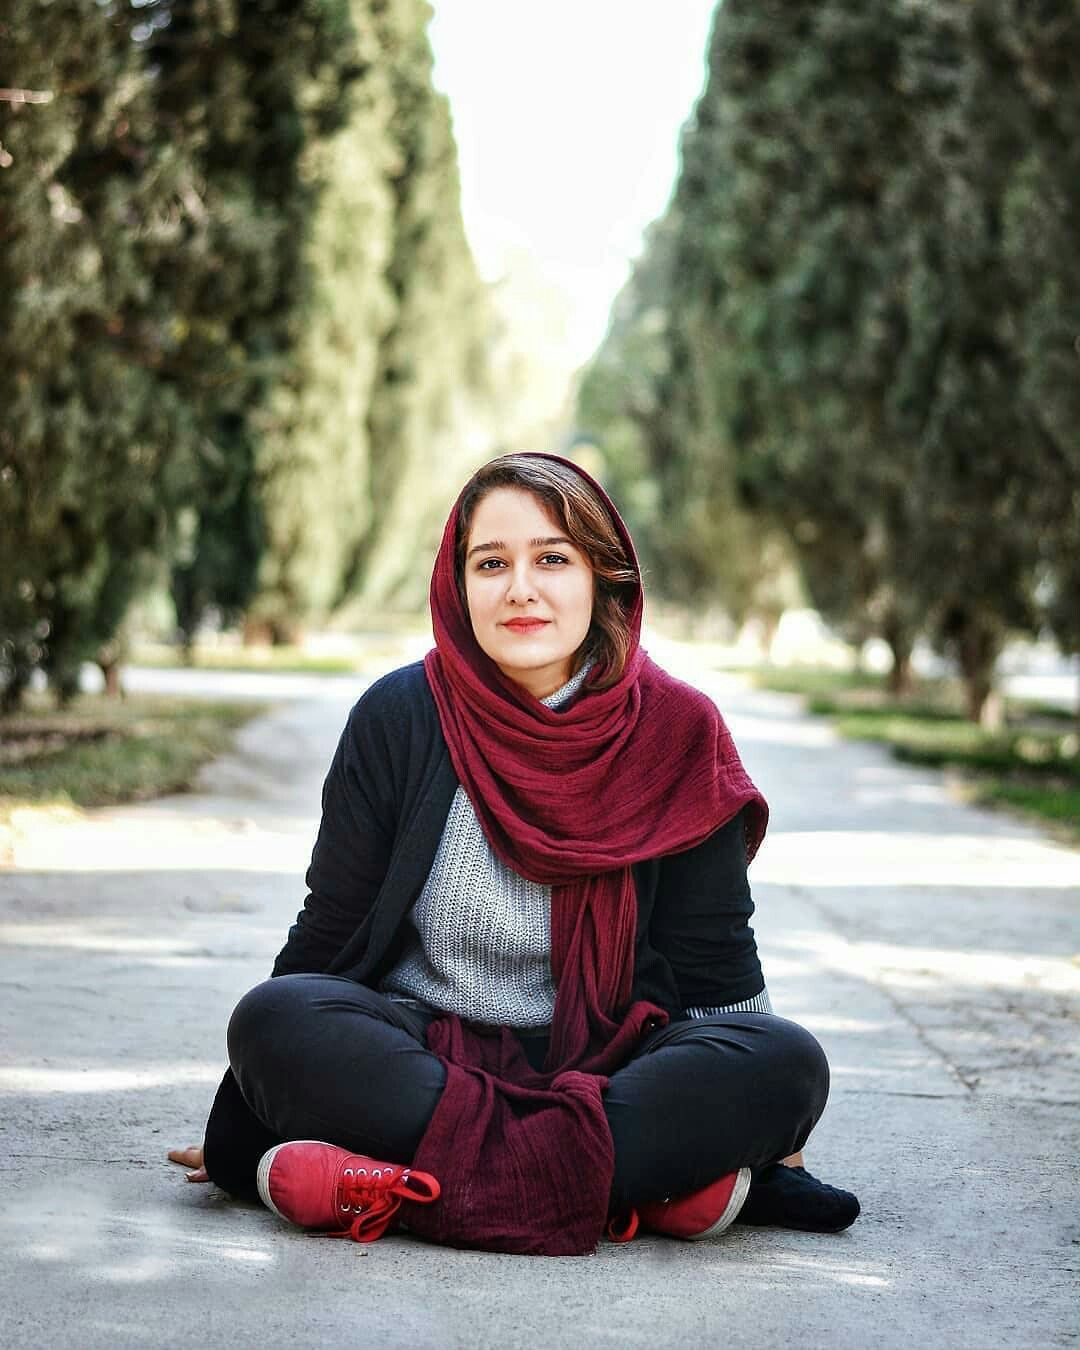 Hot iranian girls beautiful — photo 14